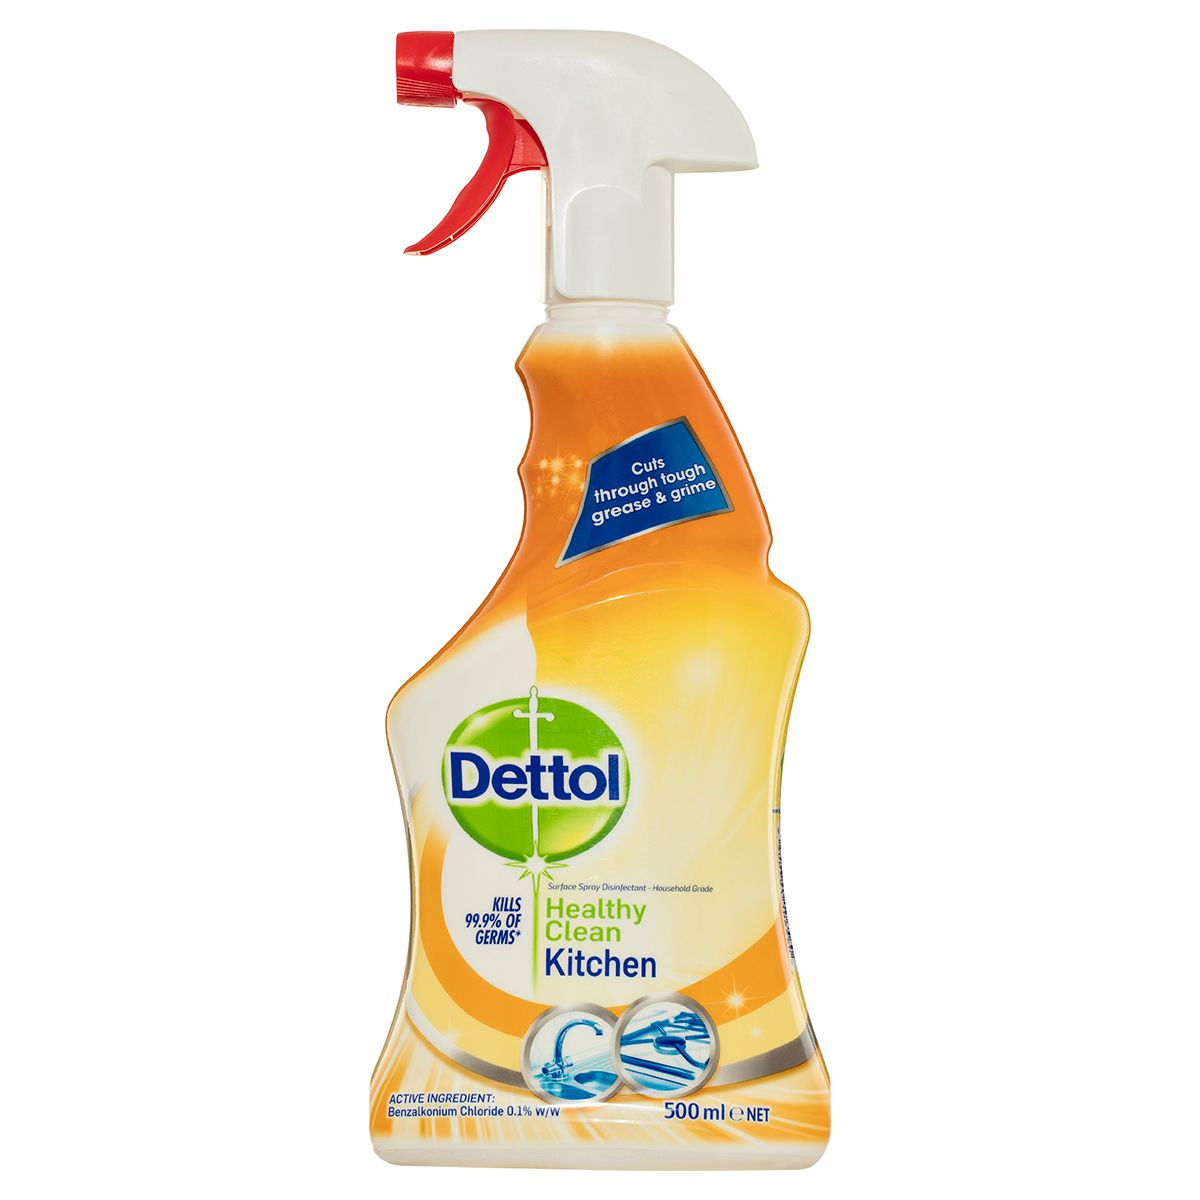 Kitchen Cleaning: Dettol Healthy Clean Kitchen Spray 500mL